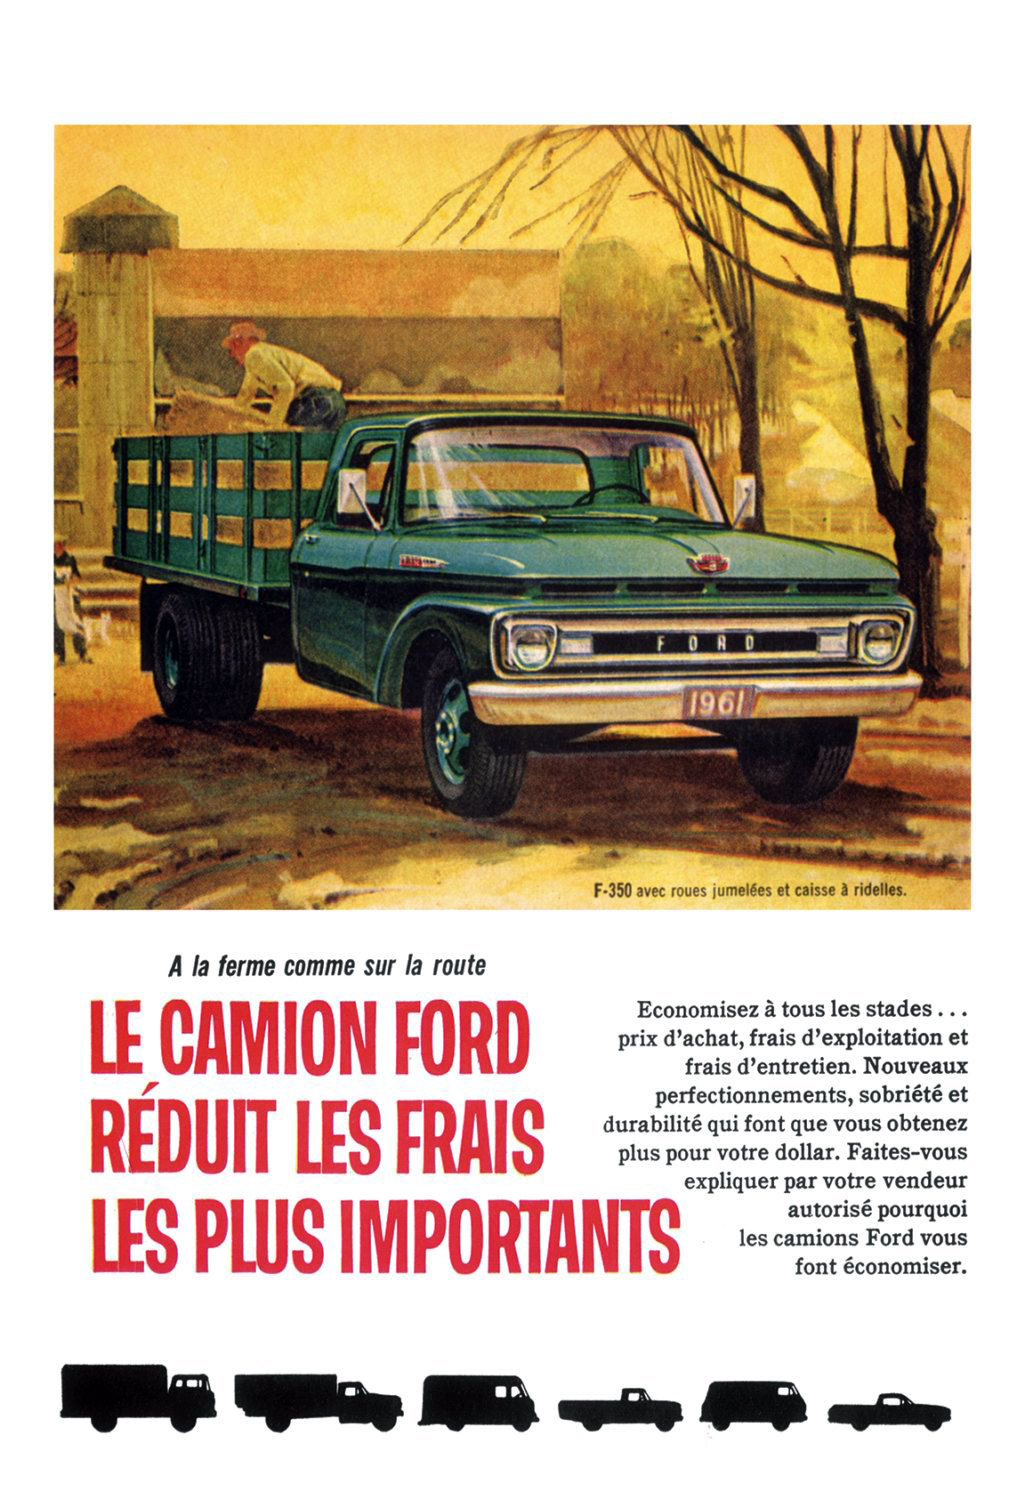 1961 Ford Ad